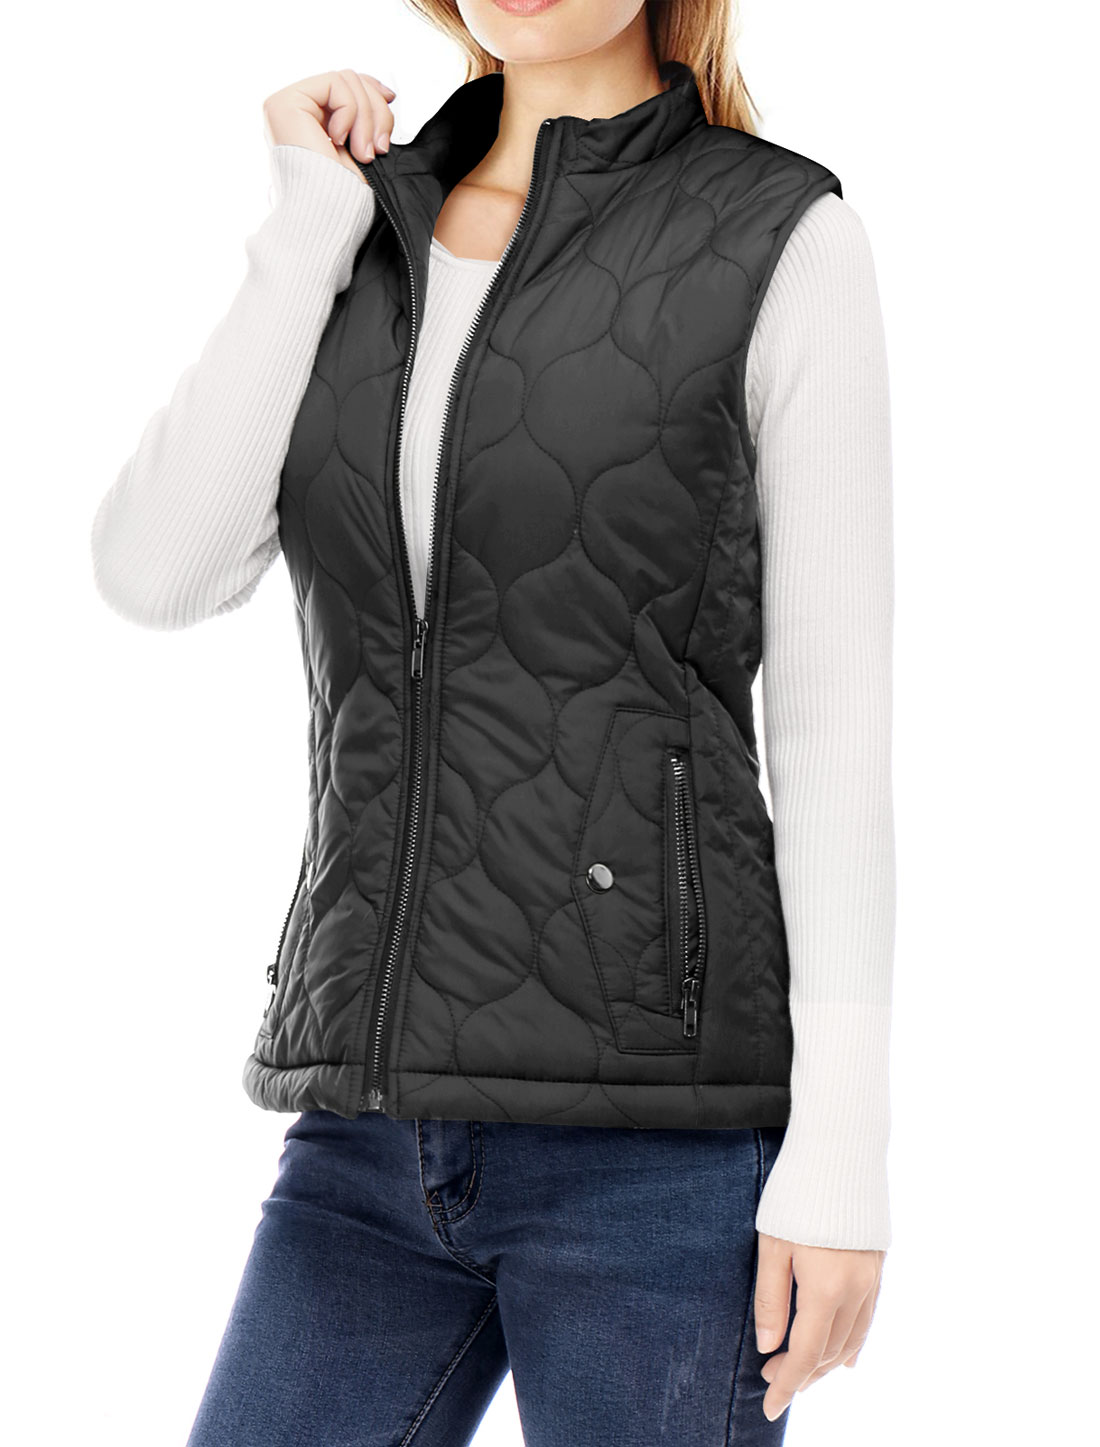 Women Stand Collar Side Pockets Zippered Quilted Padded Vest Black L